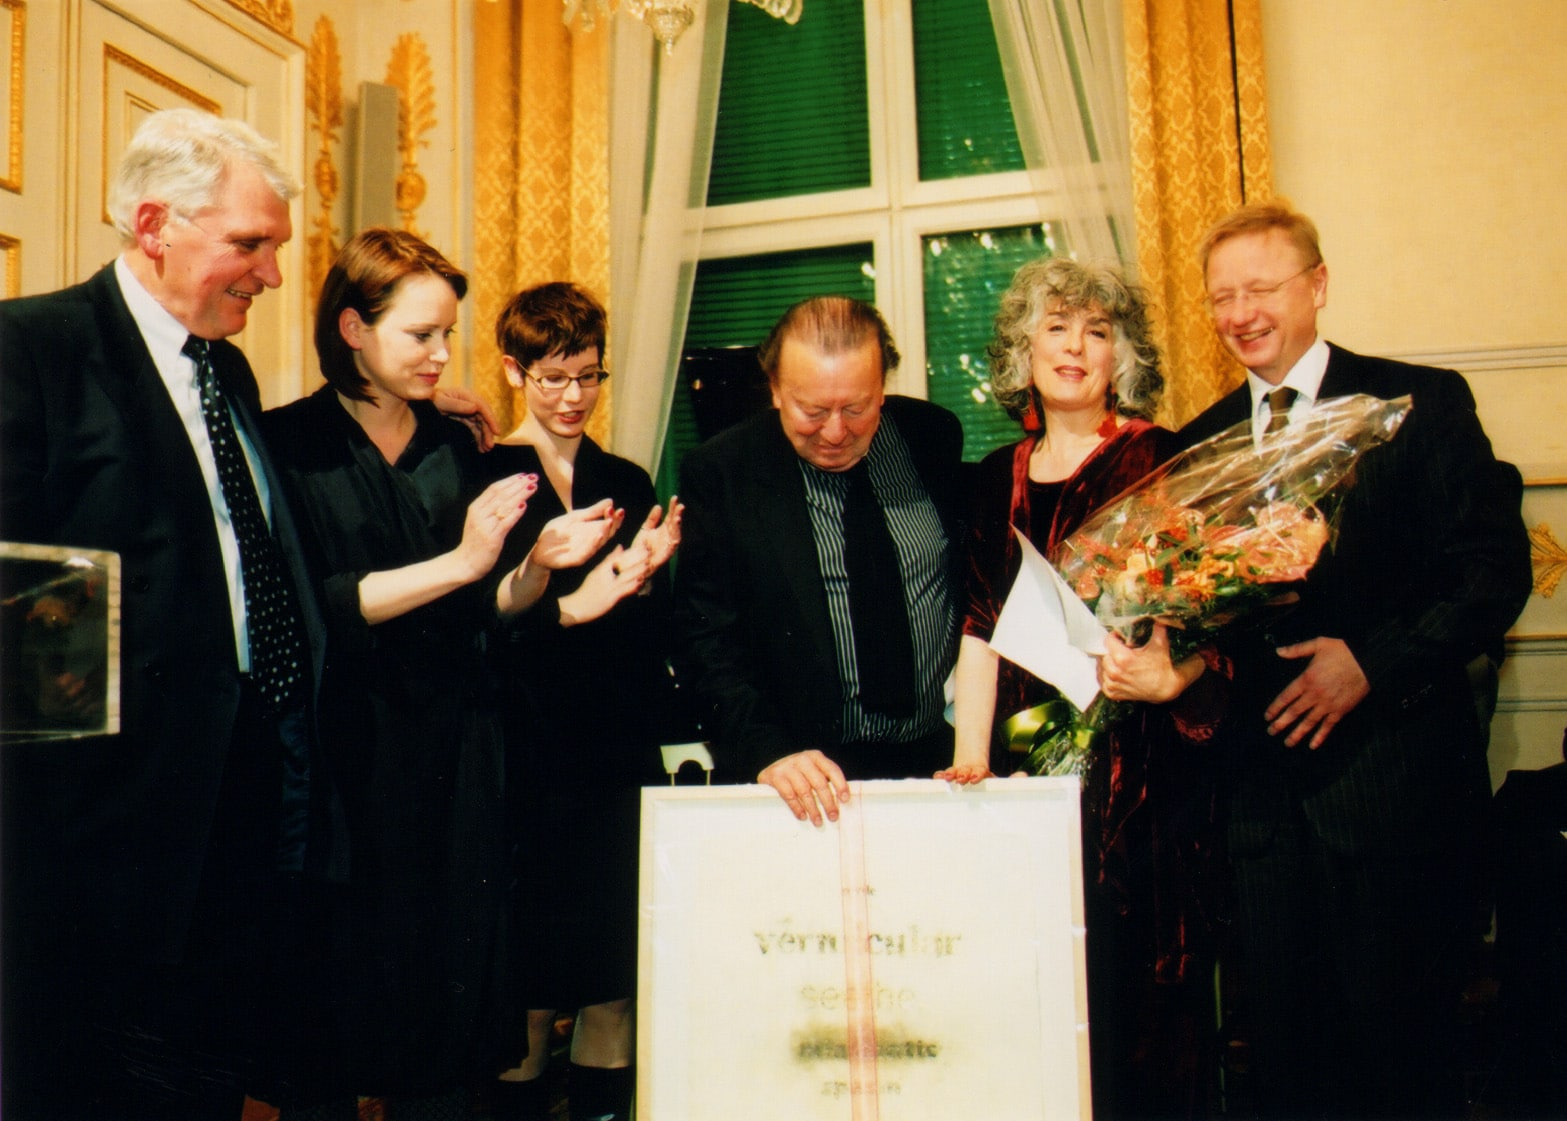 Kiesler Prize 2002 Award Ceremony